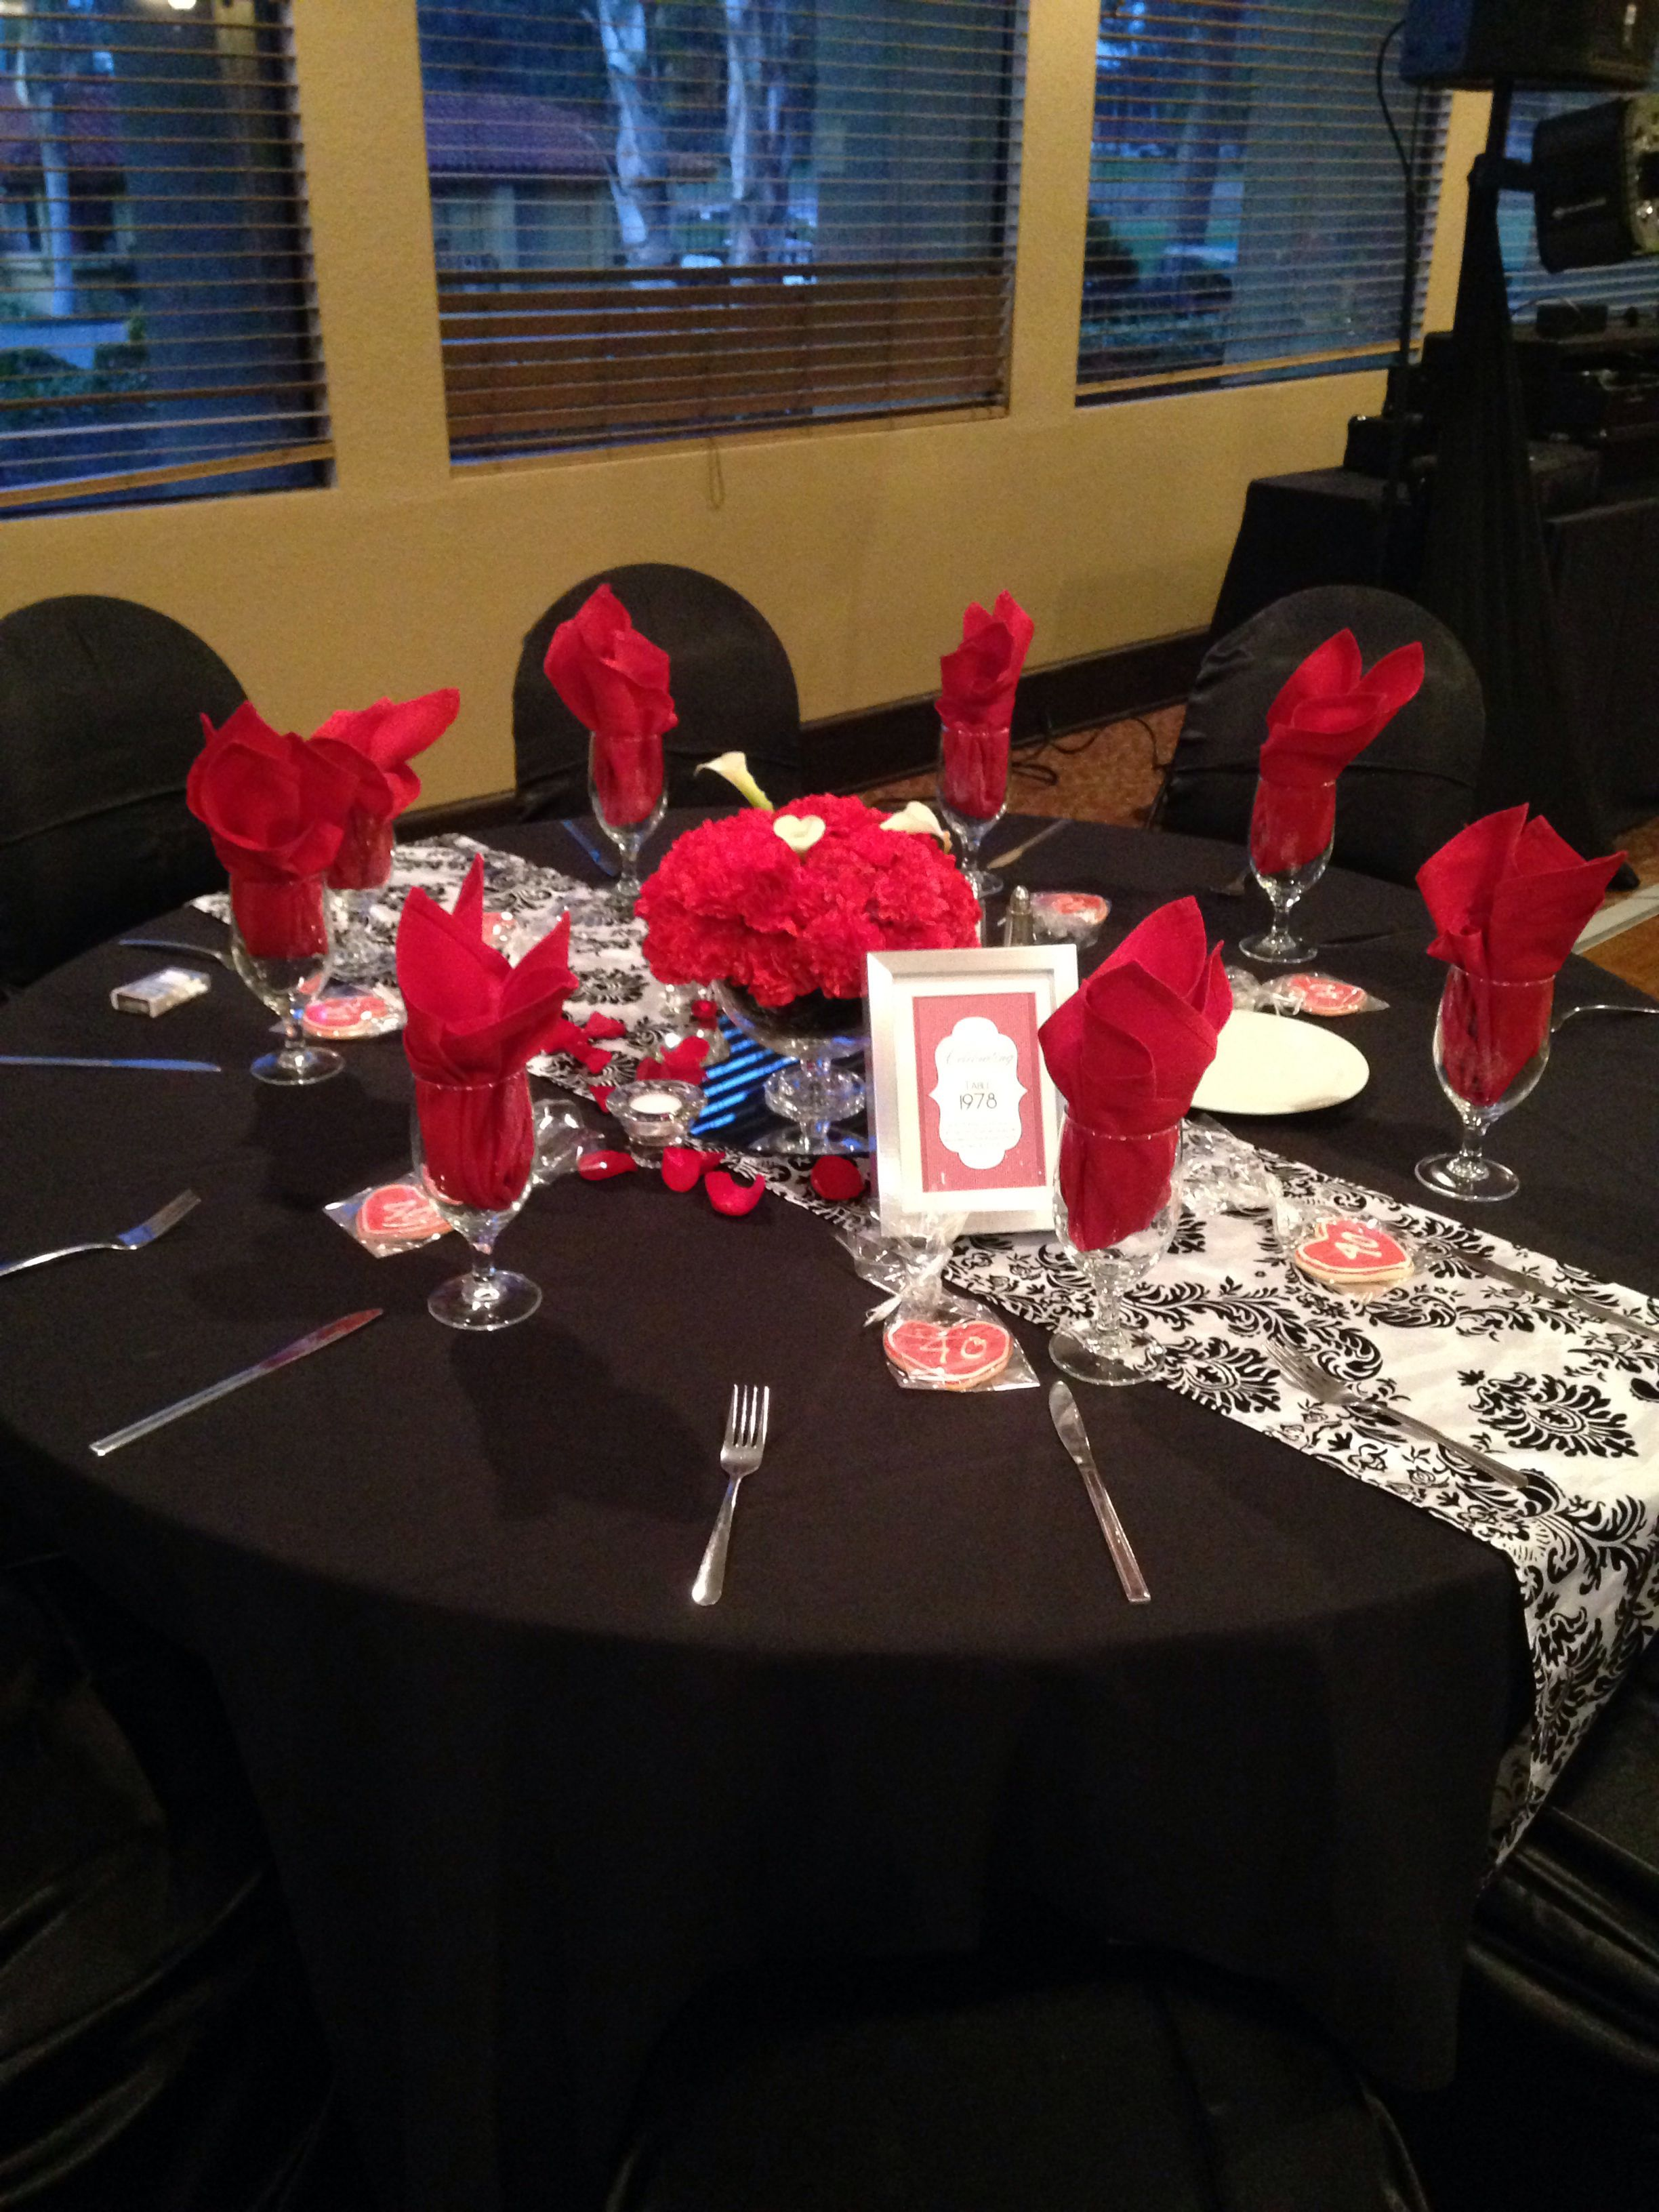 Table setting Red, Black, and White colors 40th